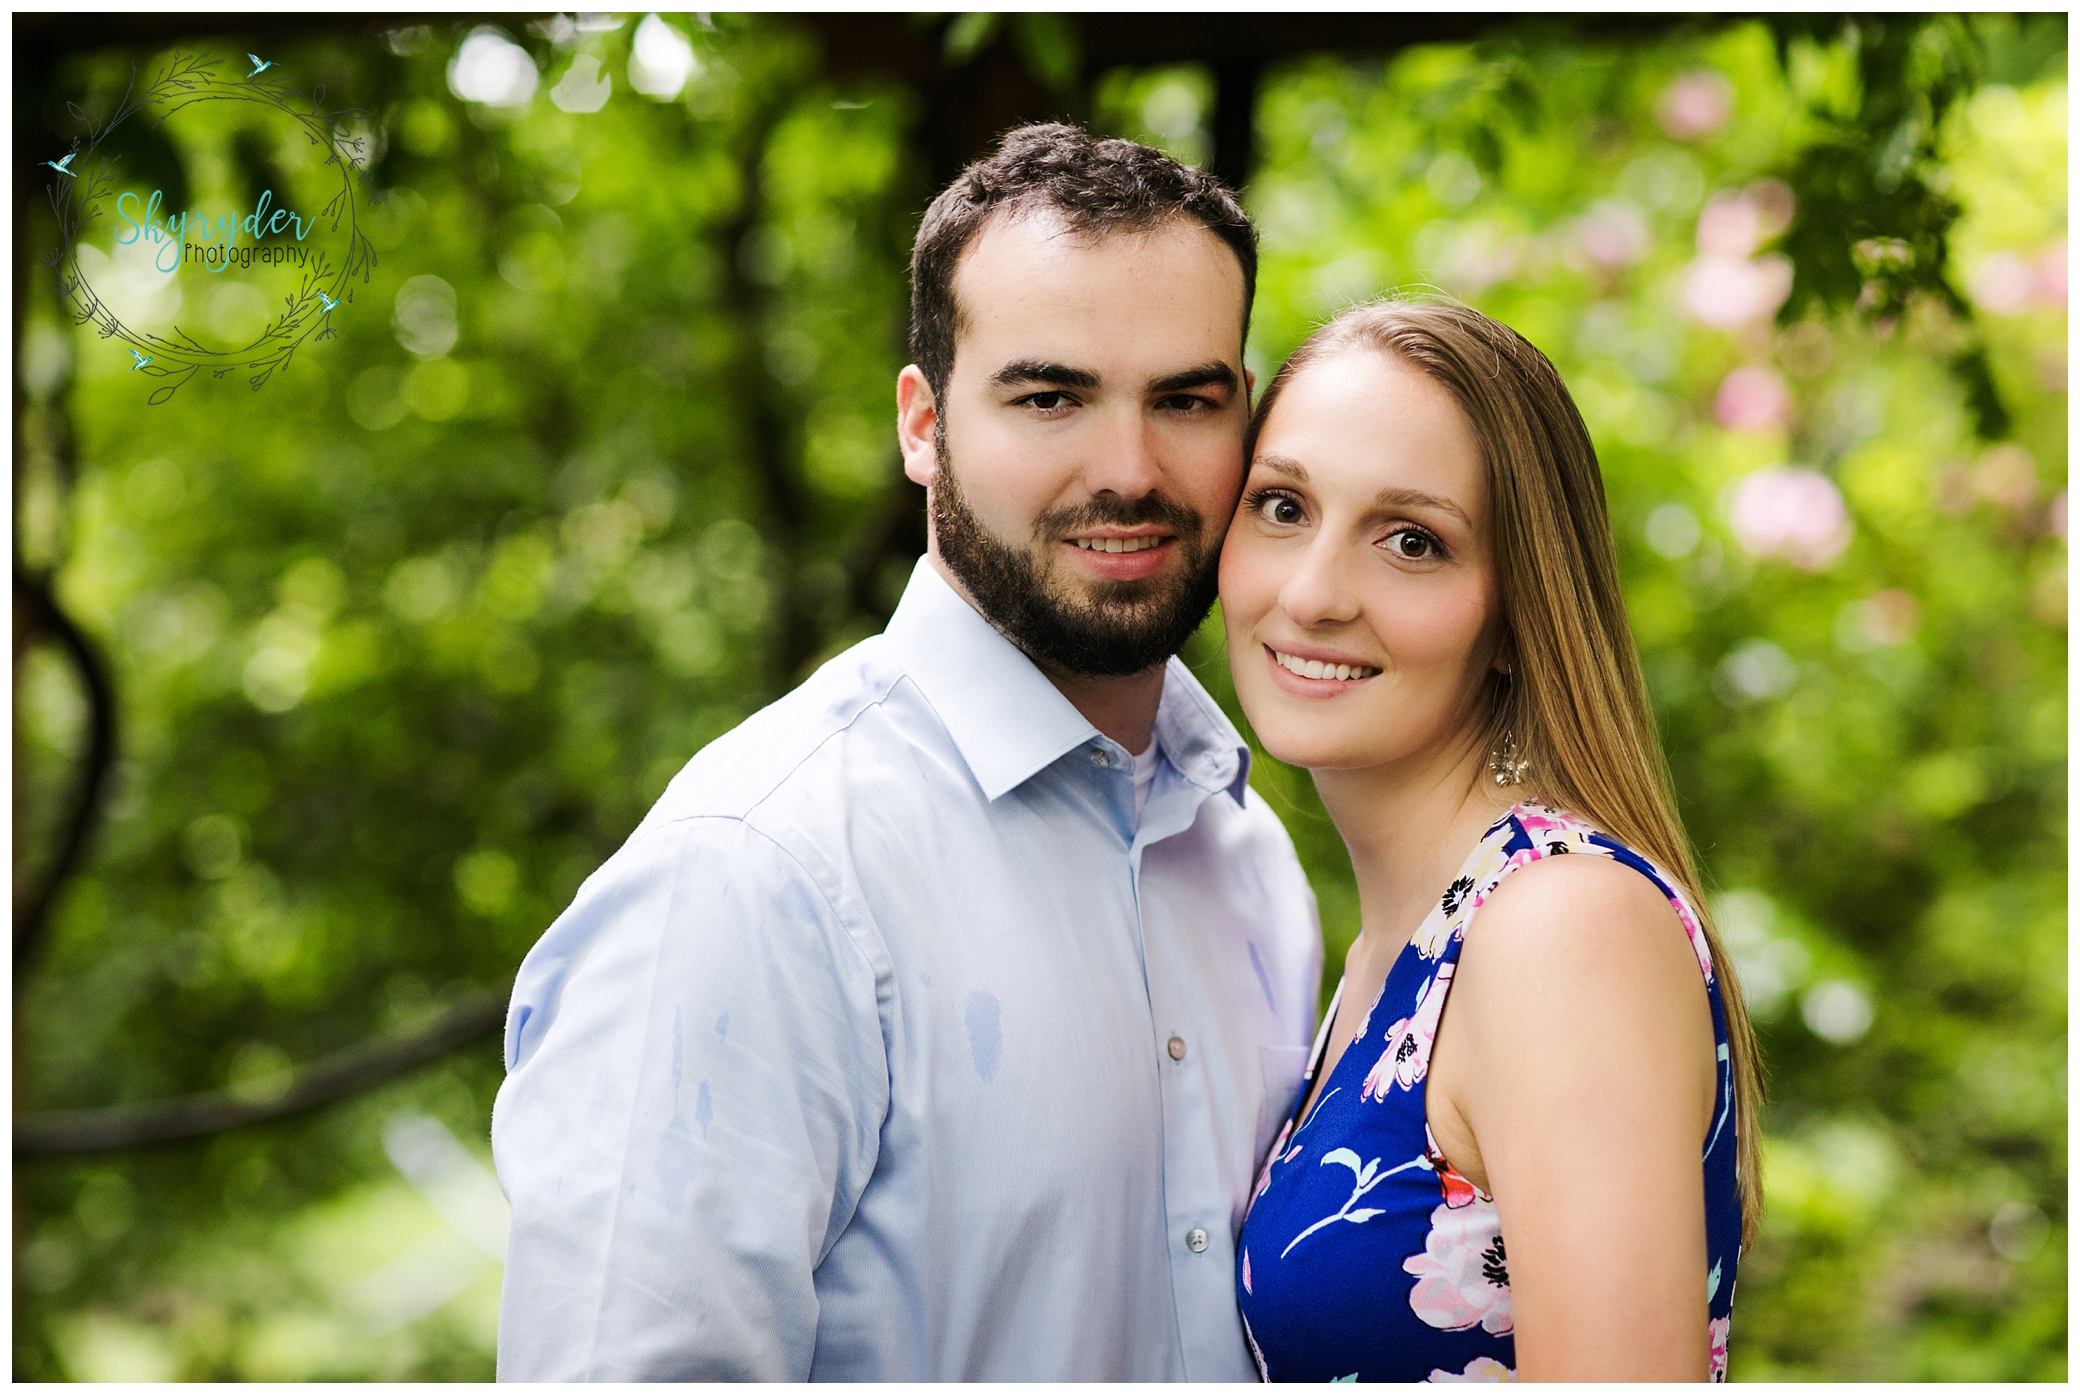 Maria + Zac | Blacksburg Engagement Photographer